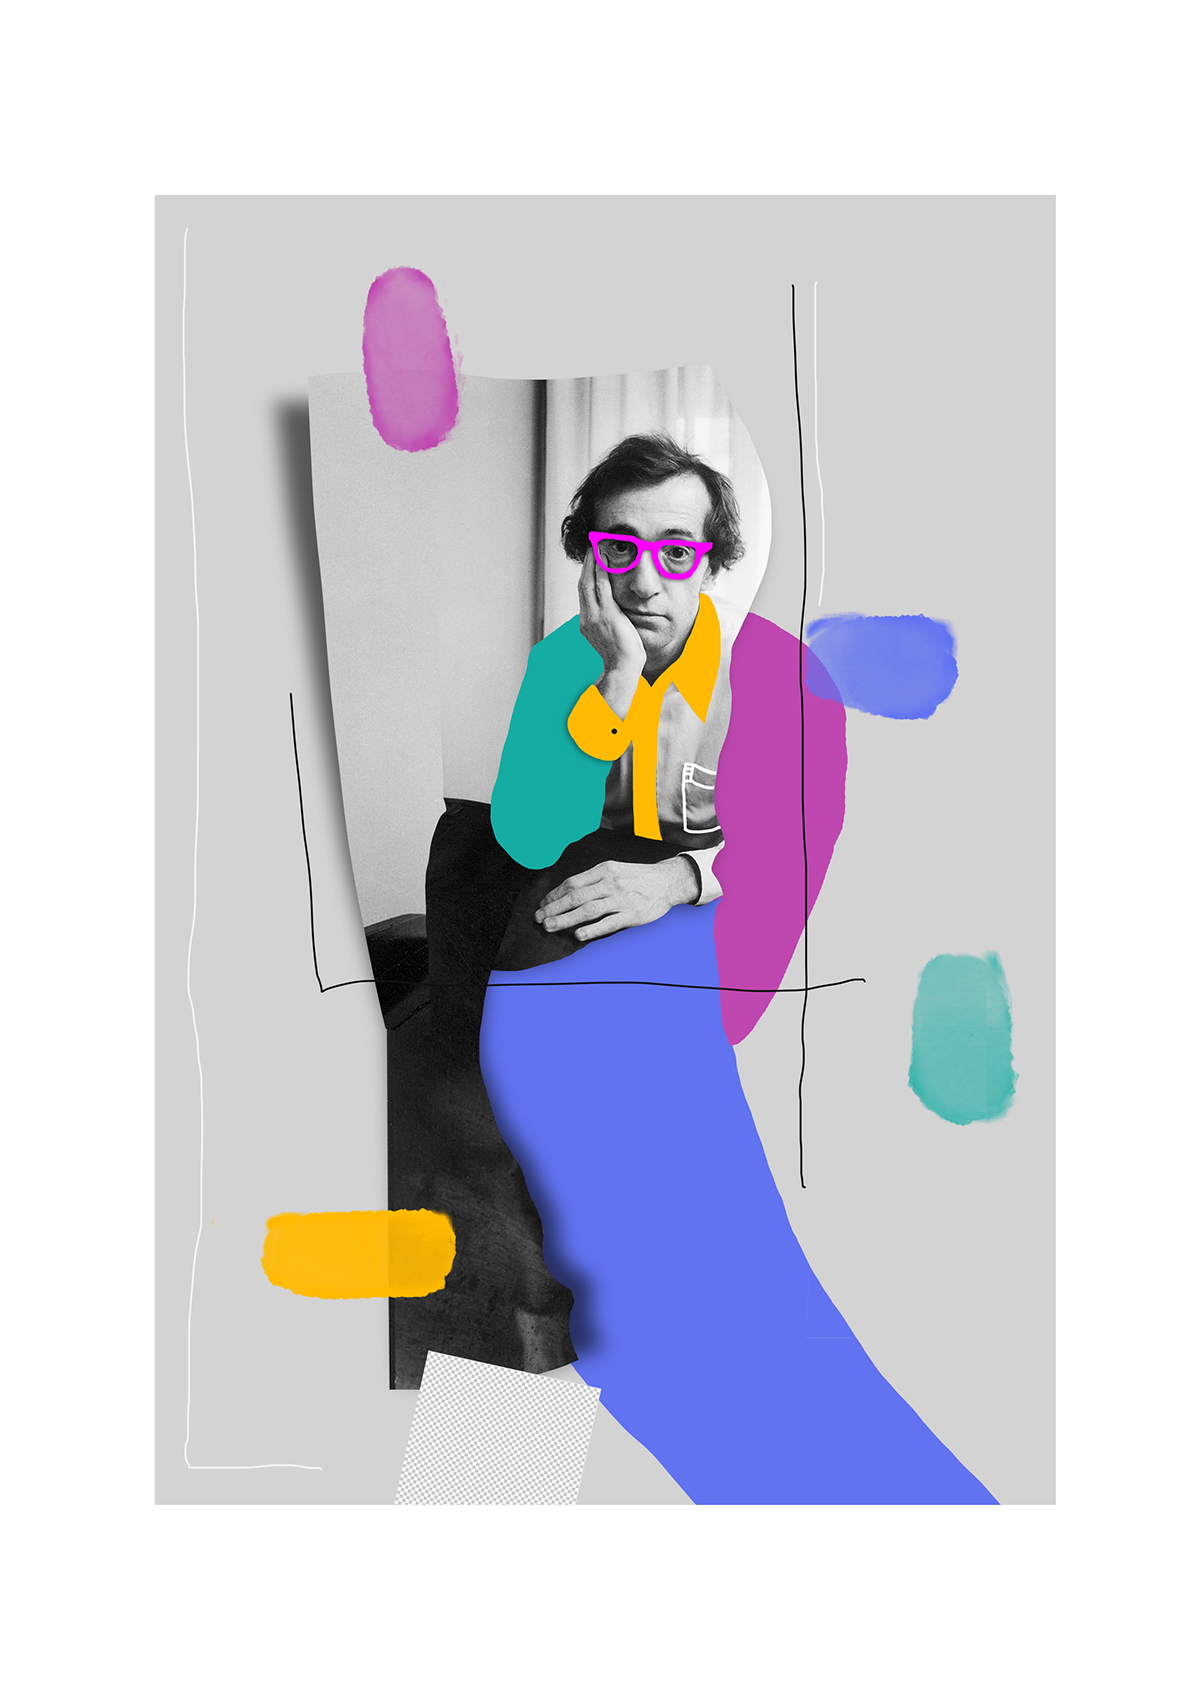 "Consulta este proyecto @Behance: ""Midnight in Woody's Colors"" https://www.behance.net/gallery/41841941/Midnight-in-Woodys-Colors"